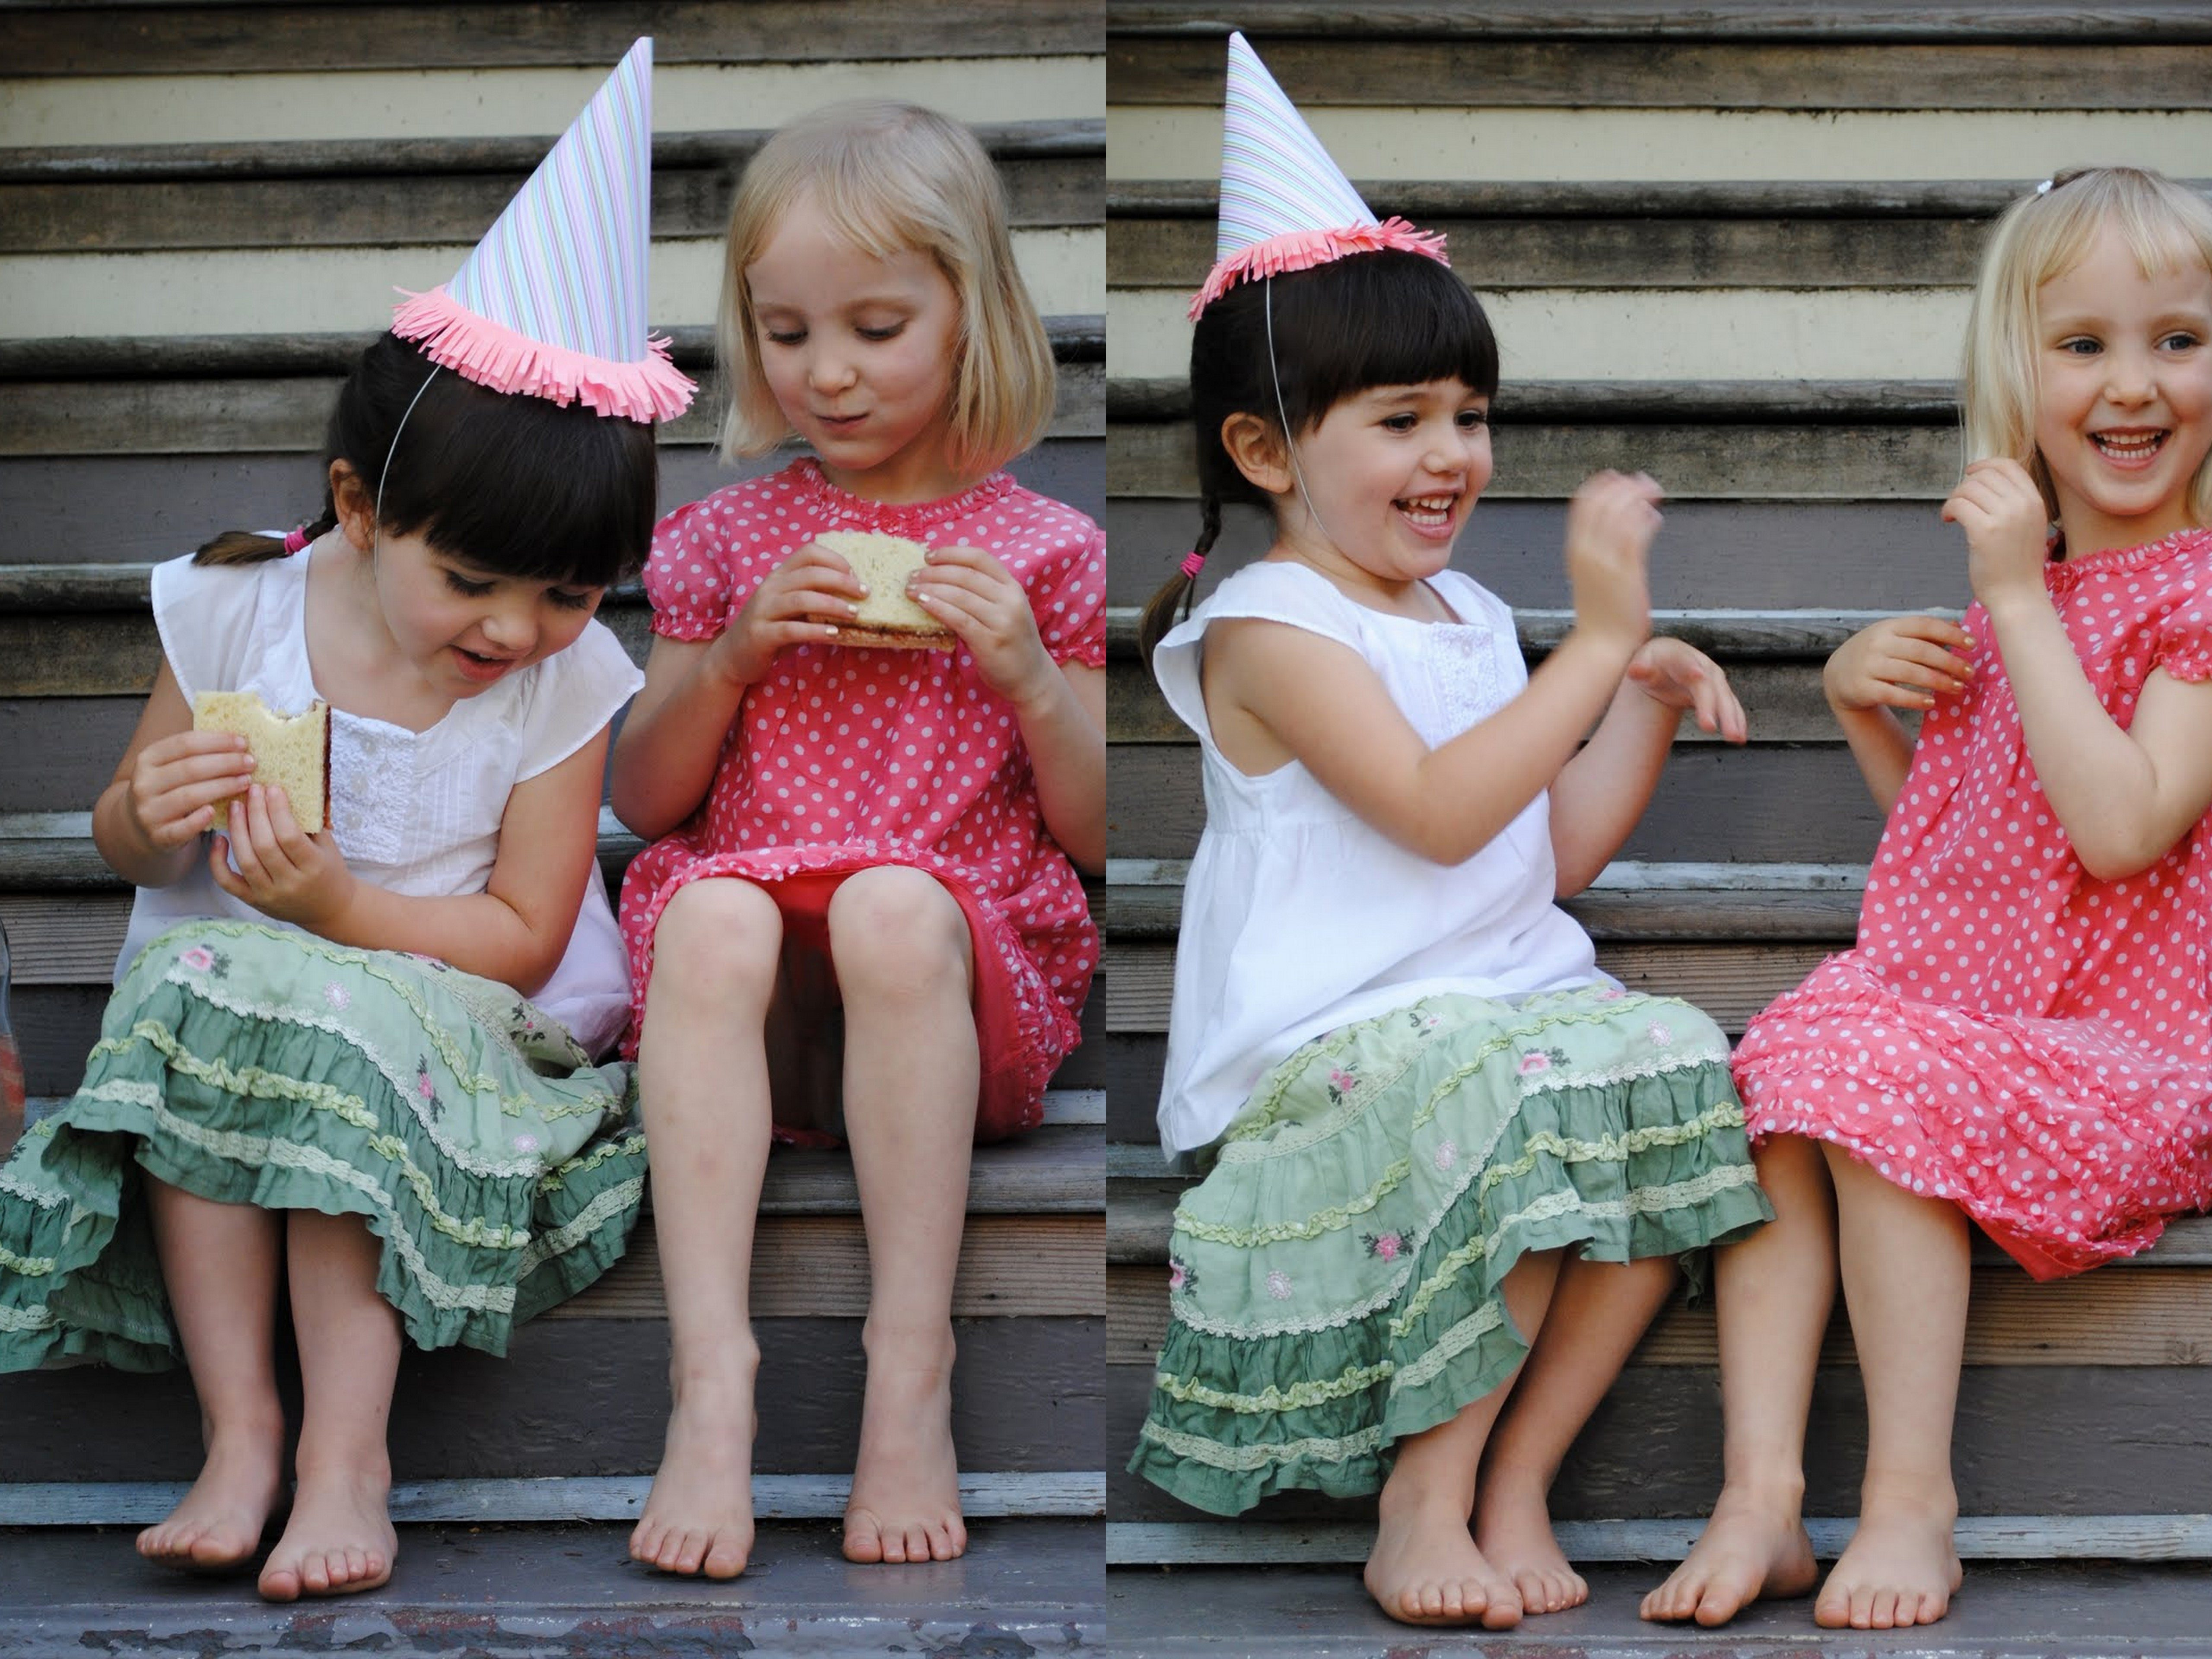 Find and save ideas about Girls birthday parties on Pinterest. | See more ideas about Girls birthday party themes, Girl birthday and 5th birthday girls. Holidays and events. Girls birthday parties Spa party for little girls - um how about for big girls like me. Maybe it's .